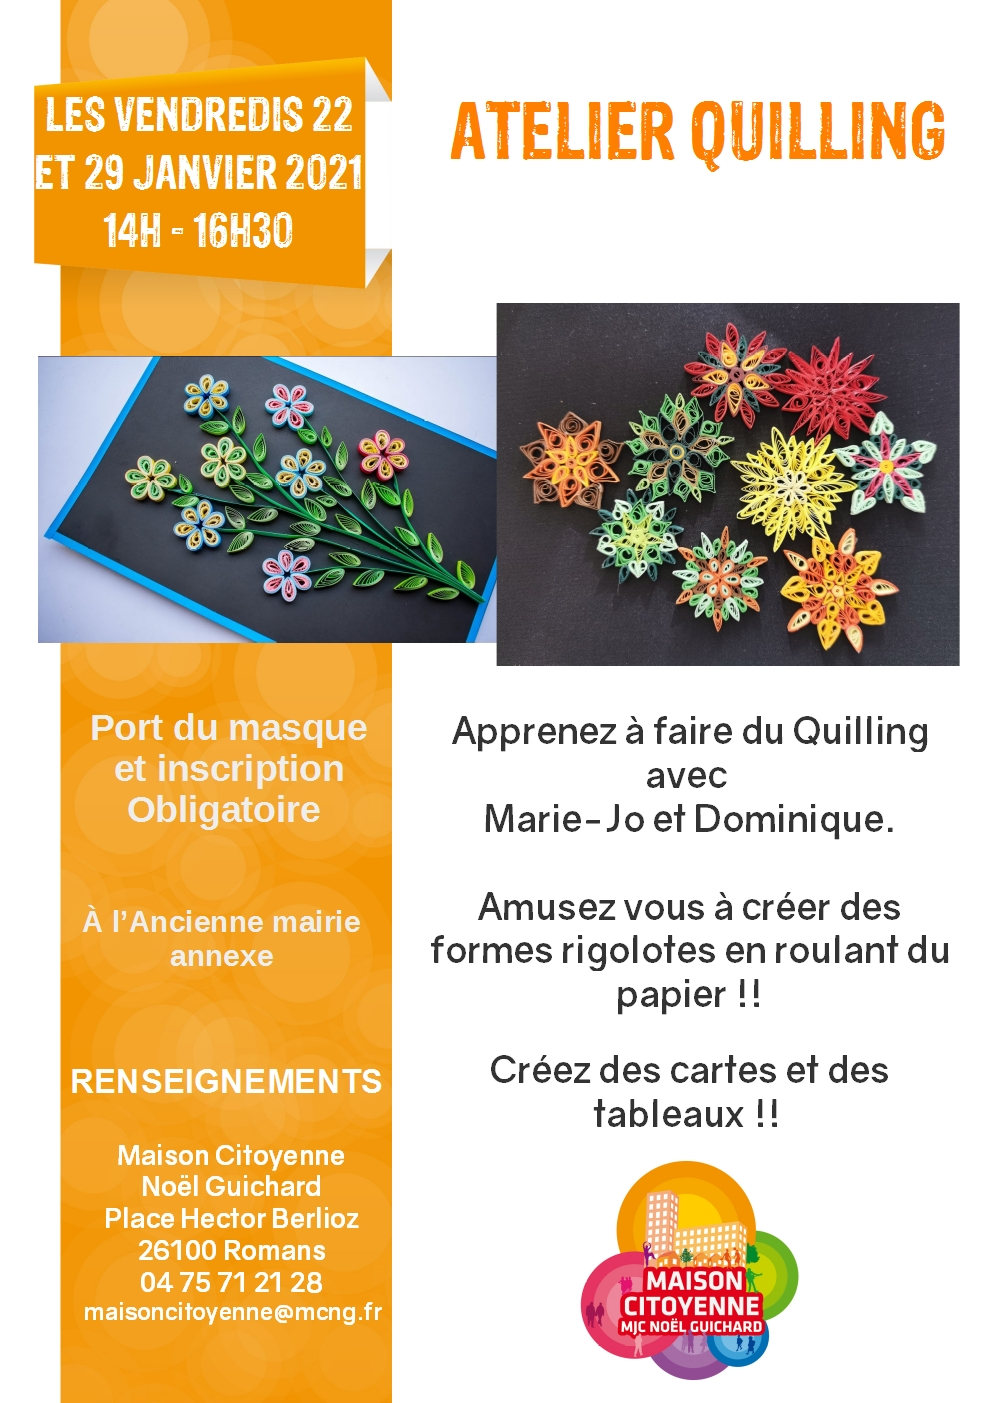 Atelier Quiling